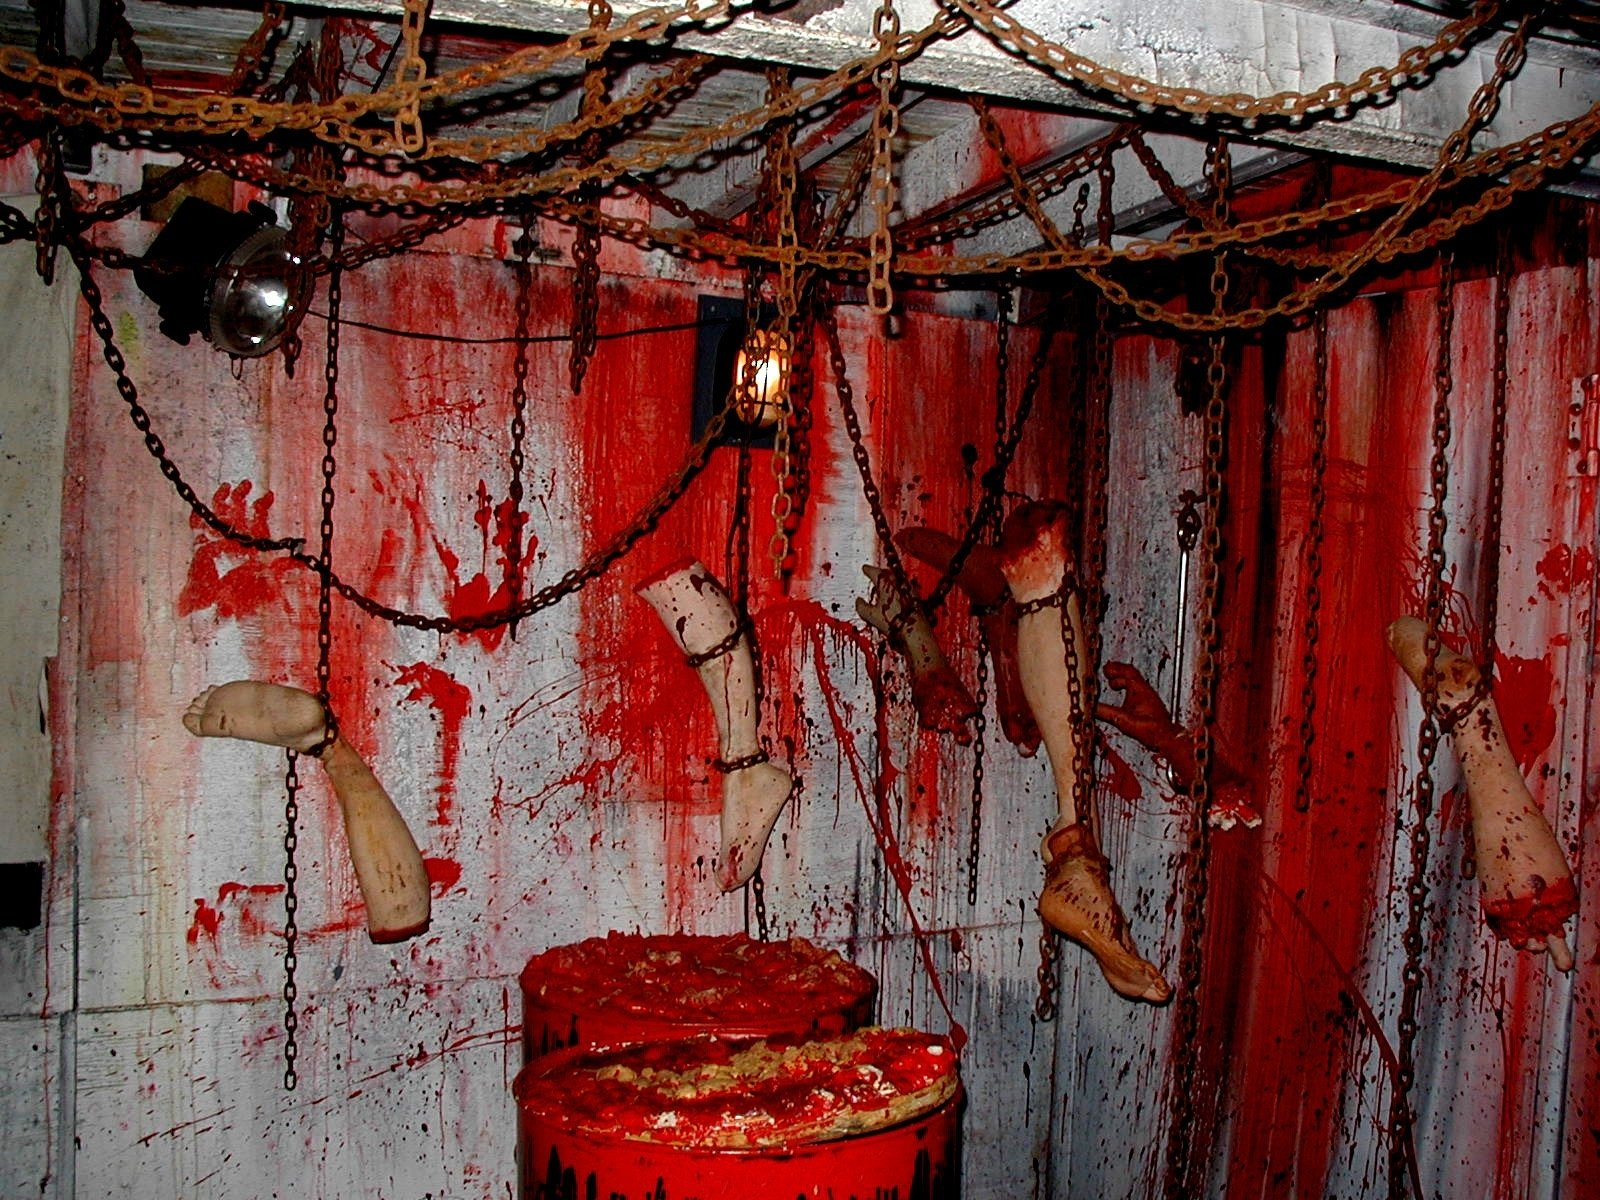 10 Trendy Haunted House Ideas For Adults haunted house 2003 01 1600x1200 pixels halloween pinterest 2021